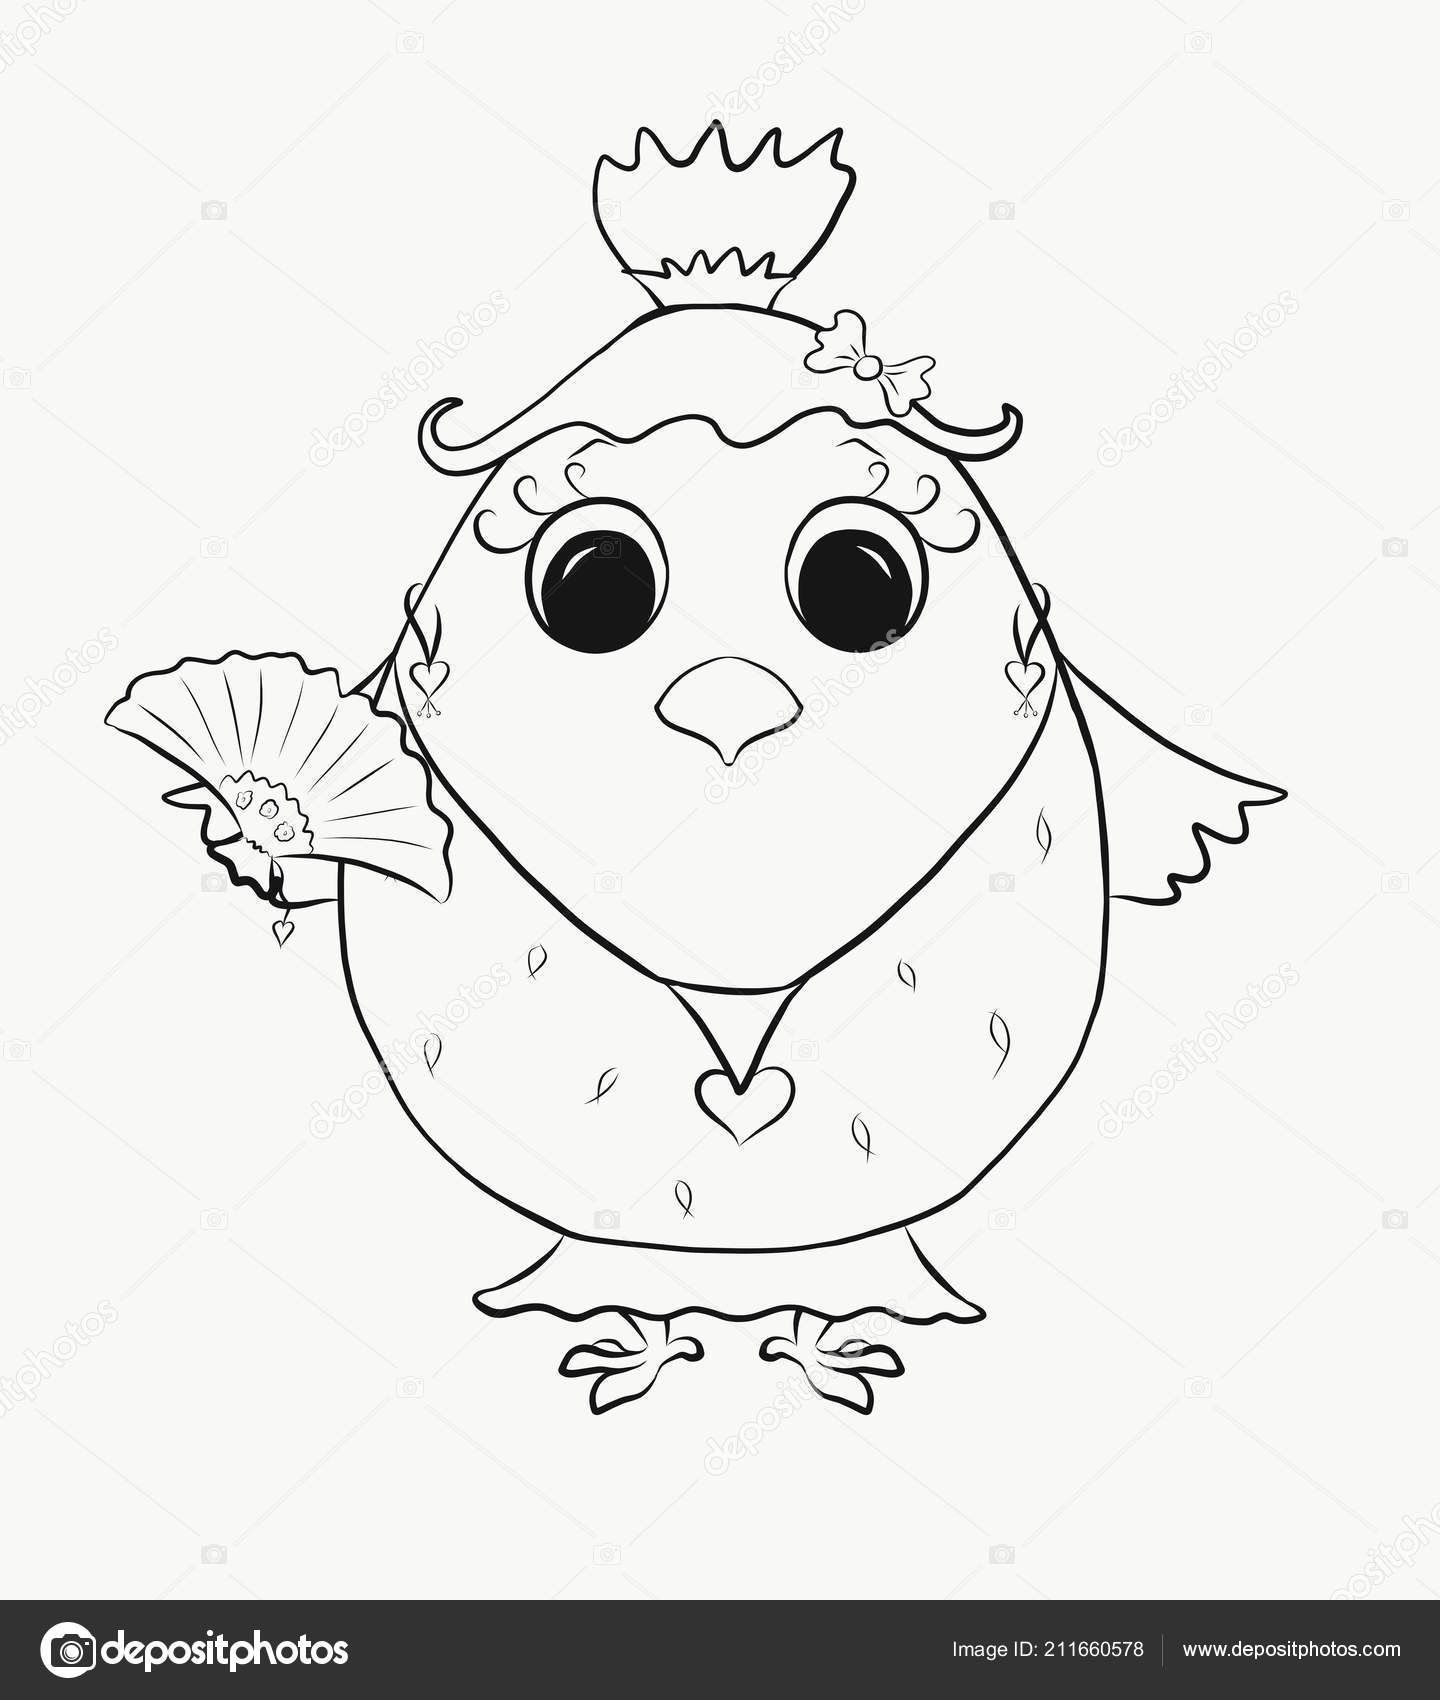 Coloring Picture Of Kids | Coloring Kids Funny Chick Girl Stockfoto C Yuliya4 211660578